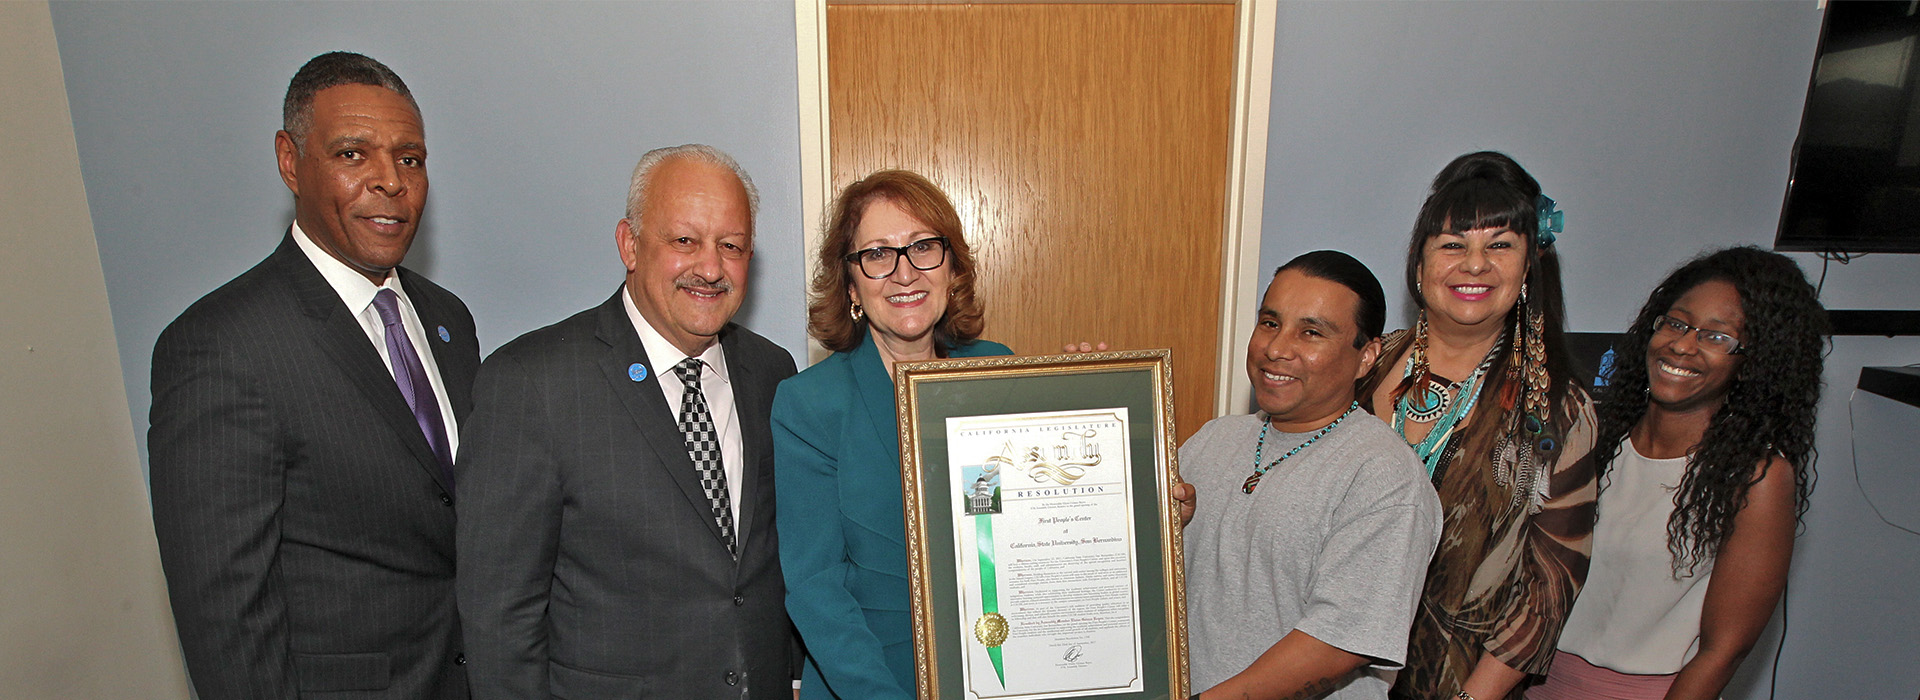 Assembly proclamation recognizes SMSU First Peoples' Center's work